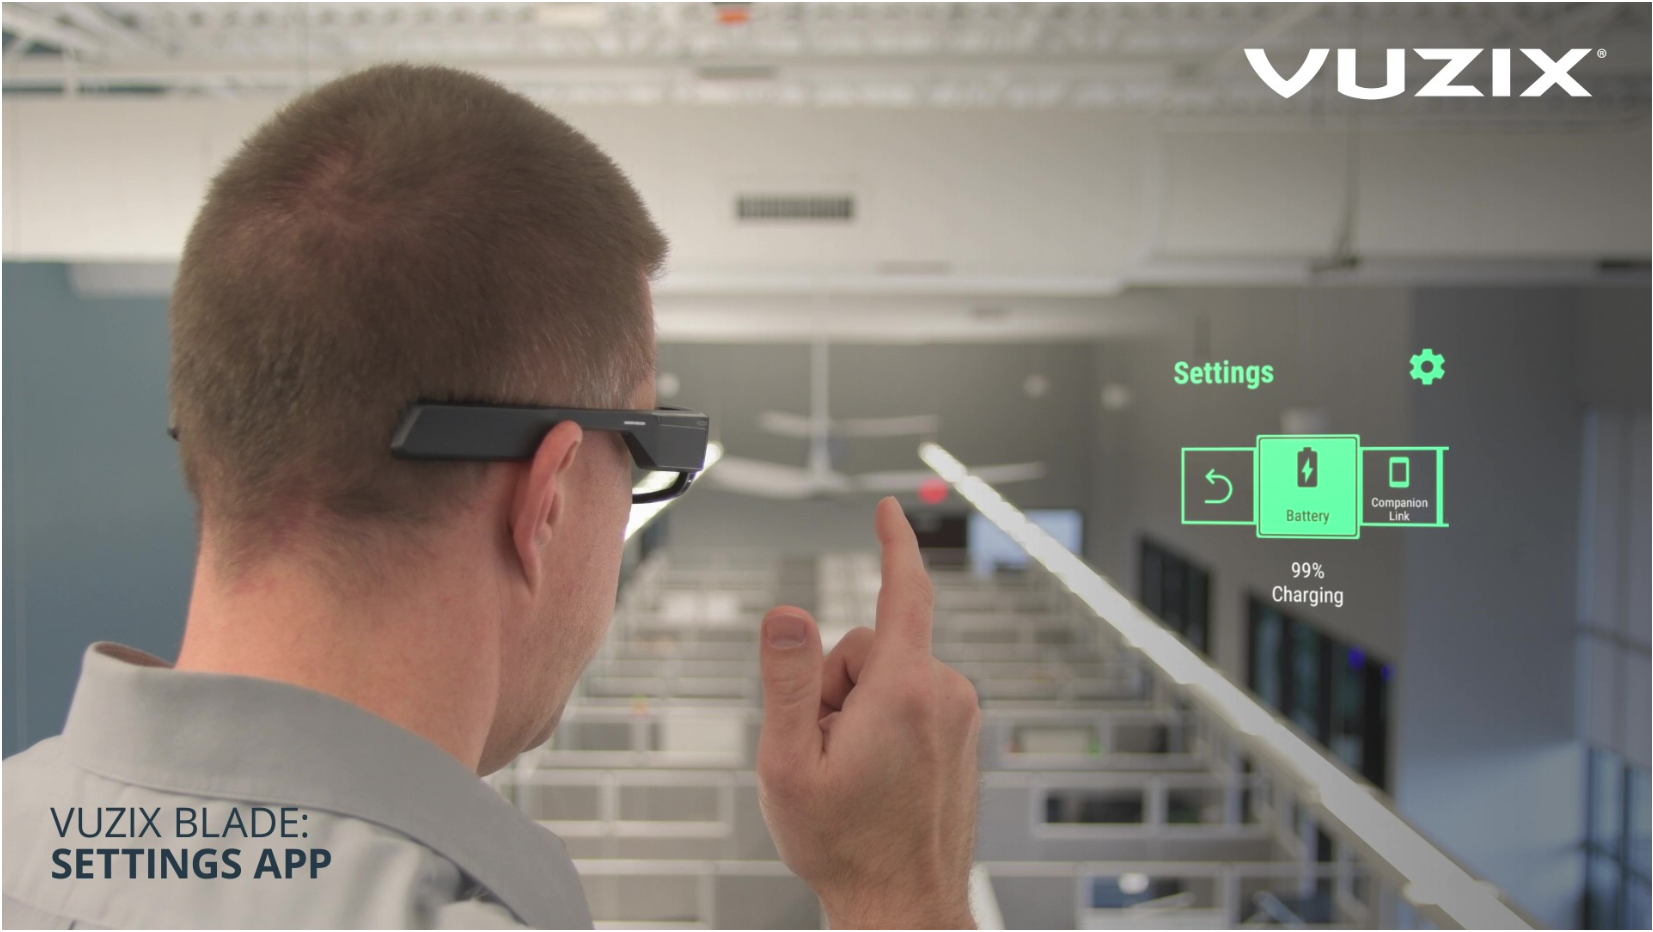 Camere Tumblr Con Luci : Vuzix blade® augment reality ar smart glasses for the consumer